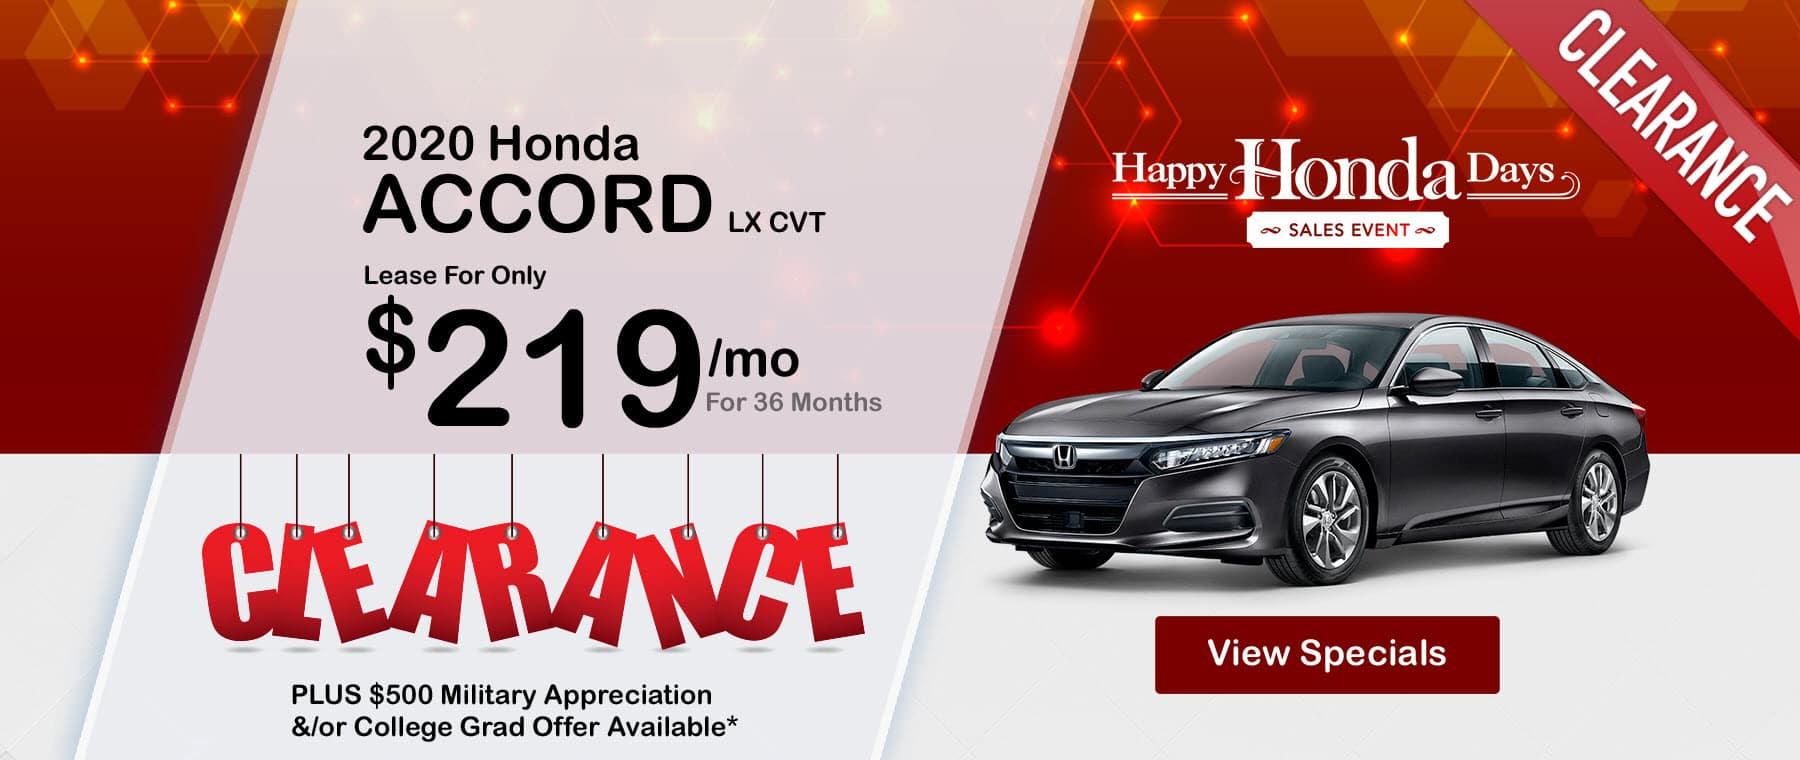 Honda Accord Honda Days